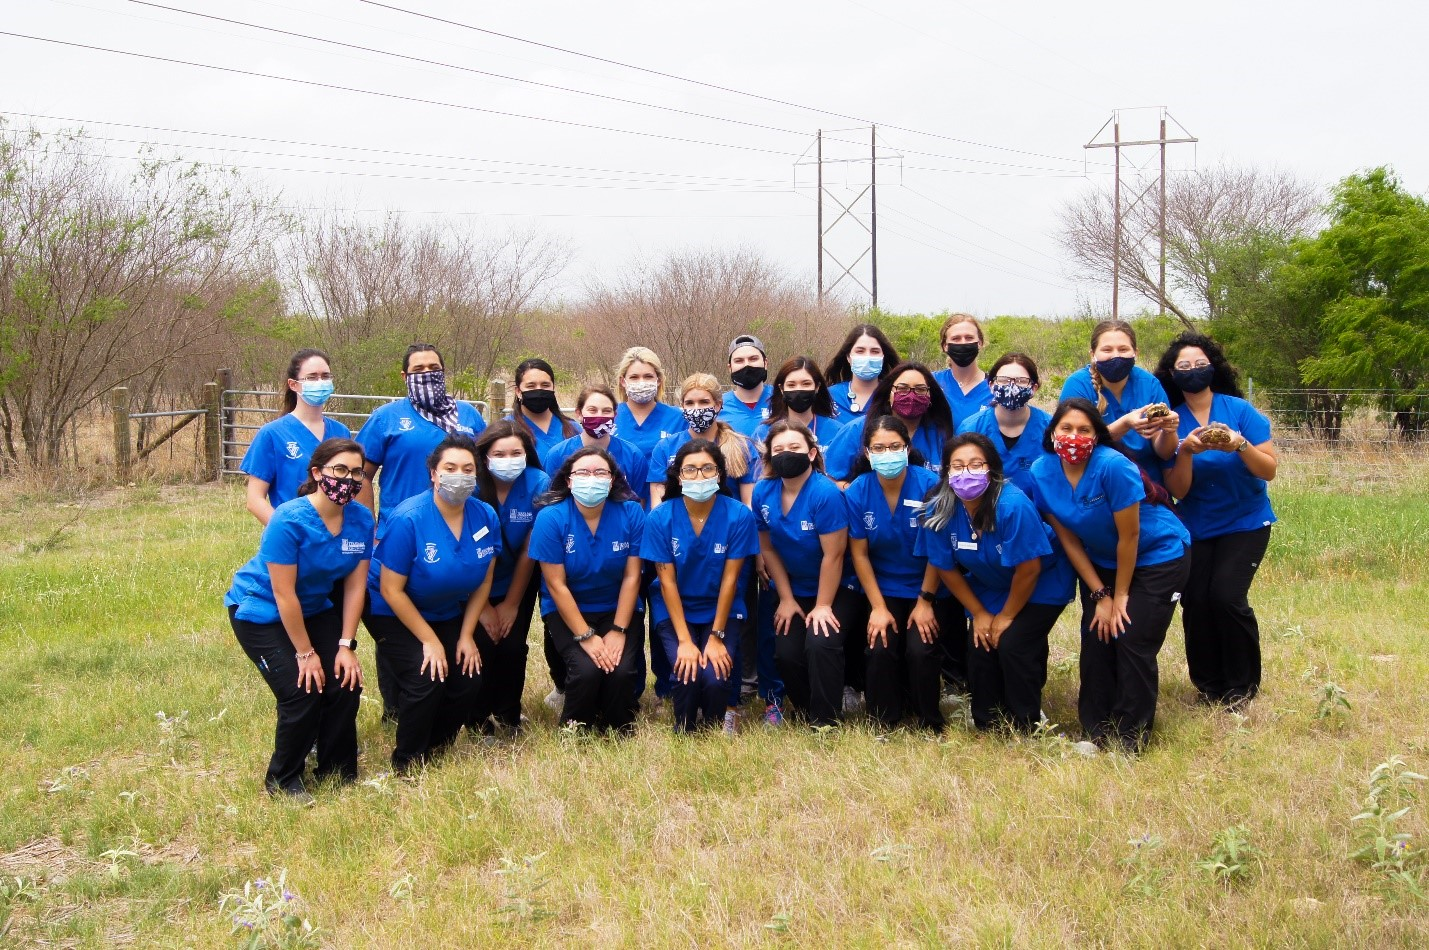 Texas A&M University-Kingsville students received pins to celebrate their graduation from the Veterinary Technology program in May 2021.